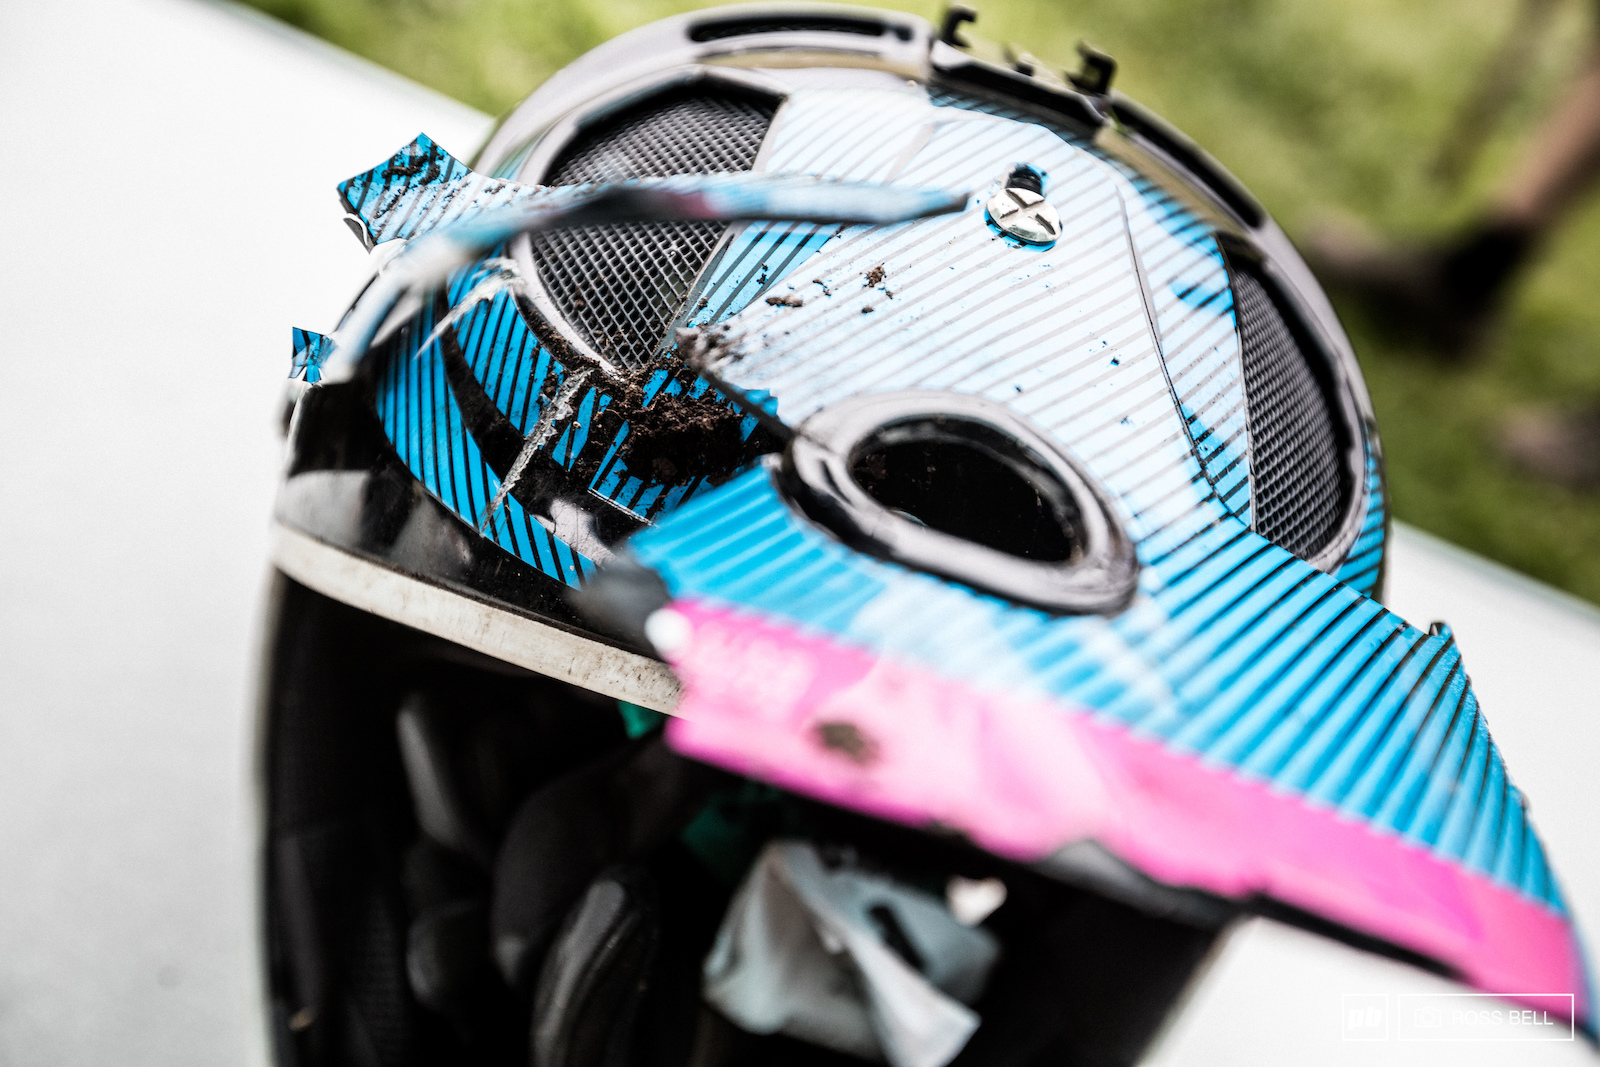 Ines Thoma s helmet bore the full brunt of her crash she hobbled to the finish in 10th before heading for a check up at the hospital.